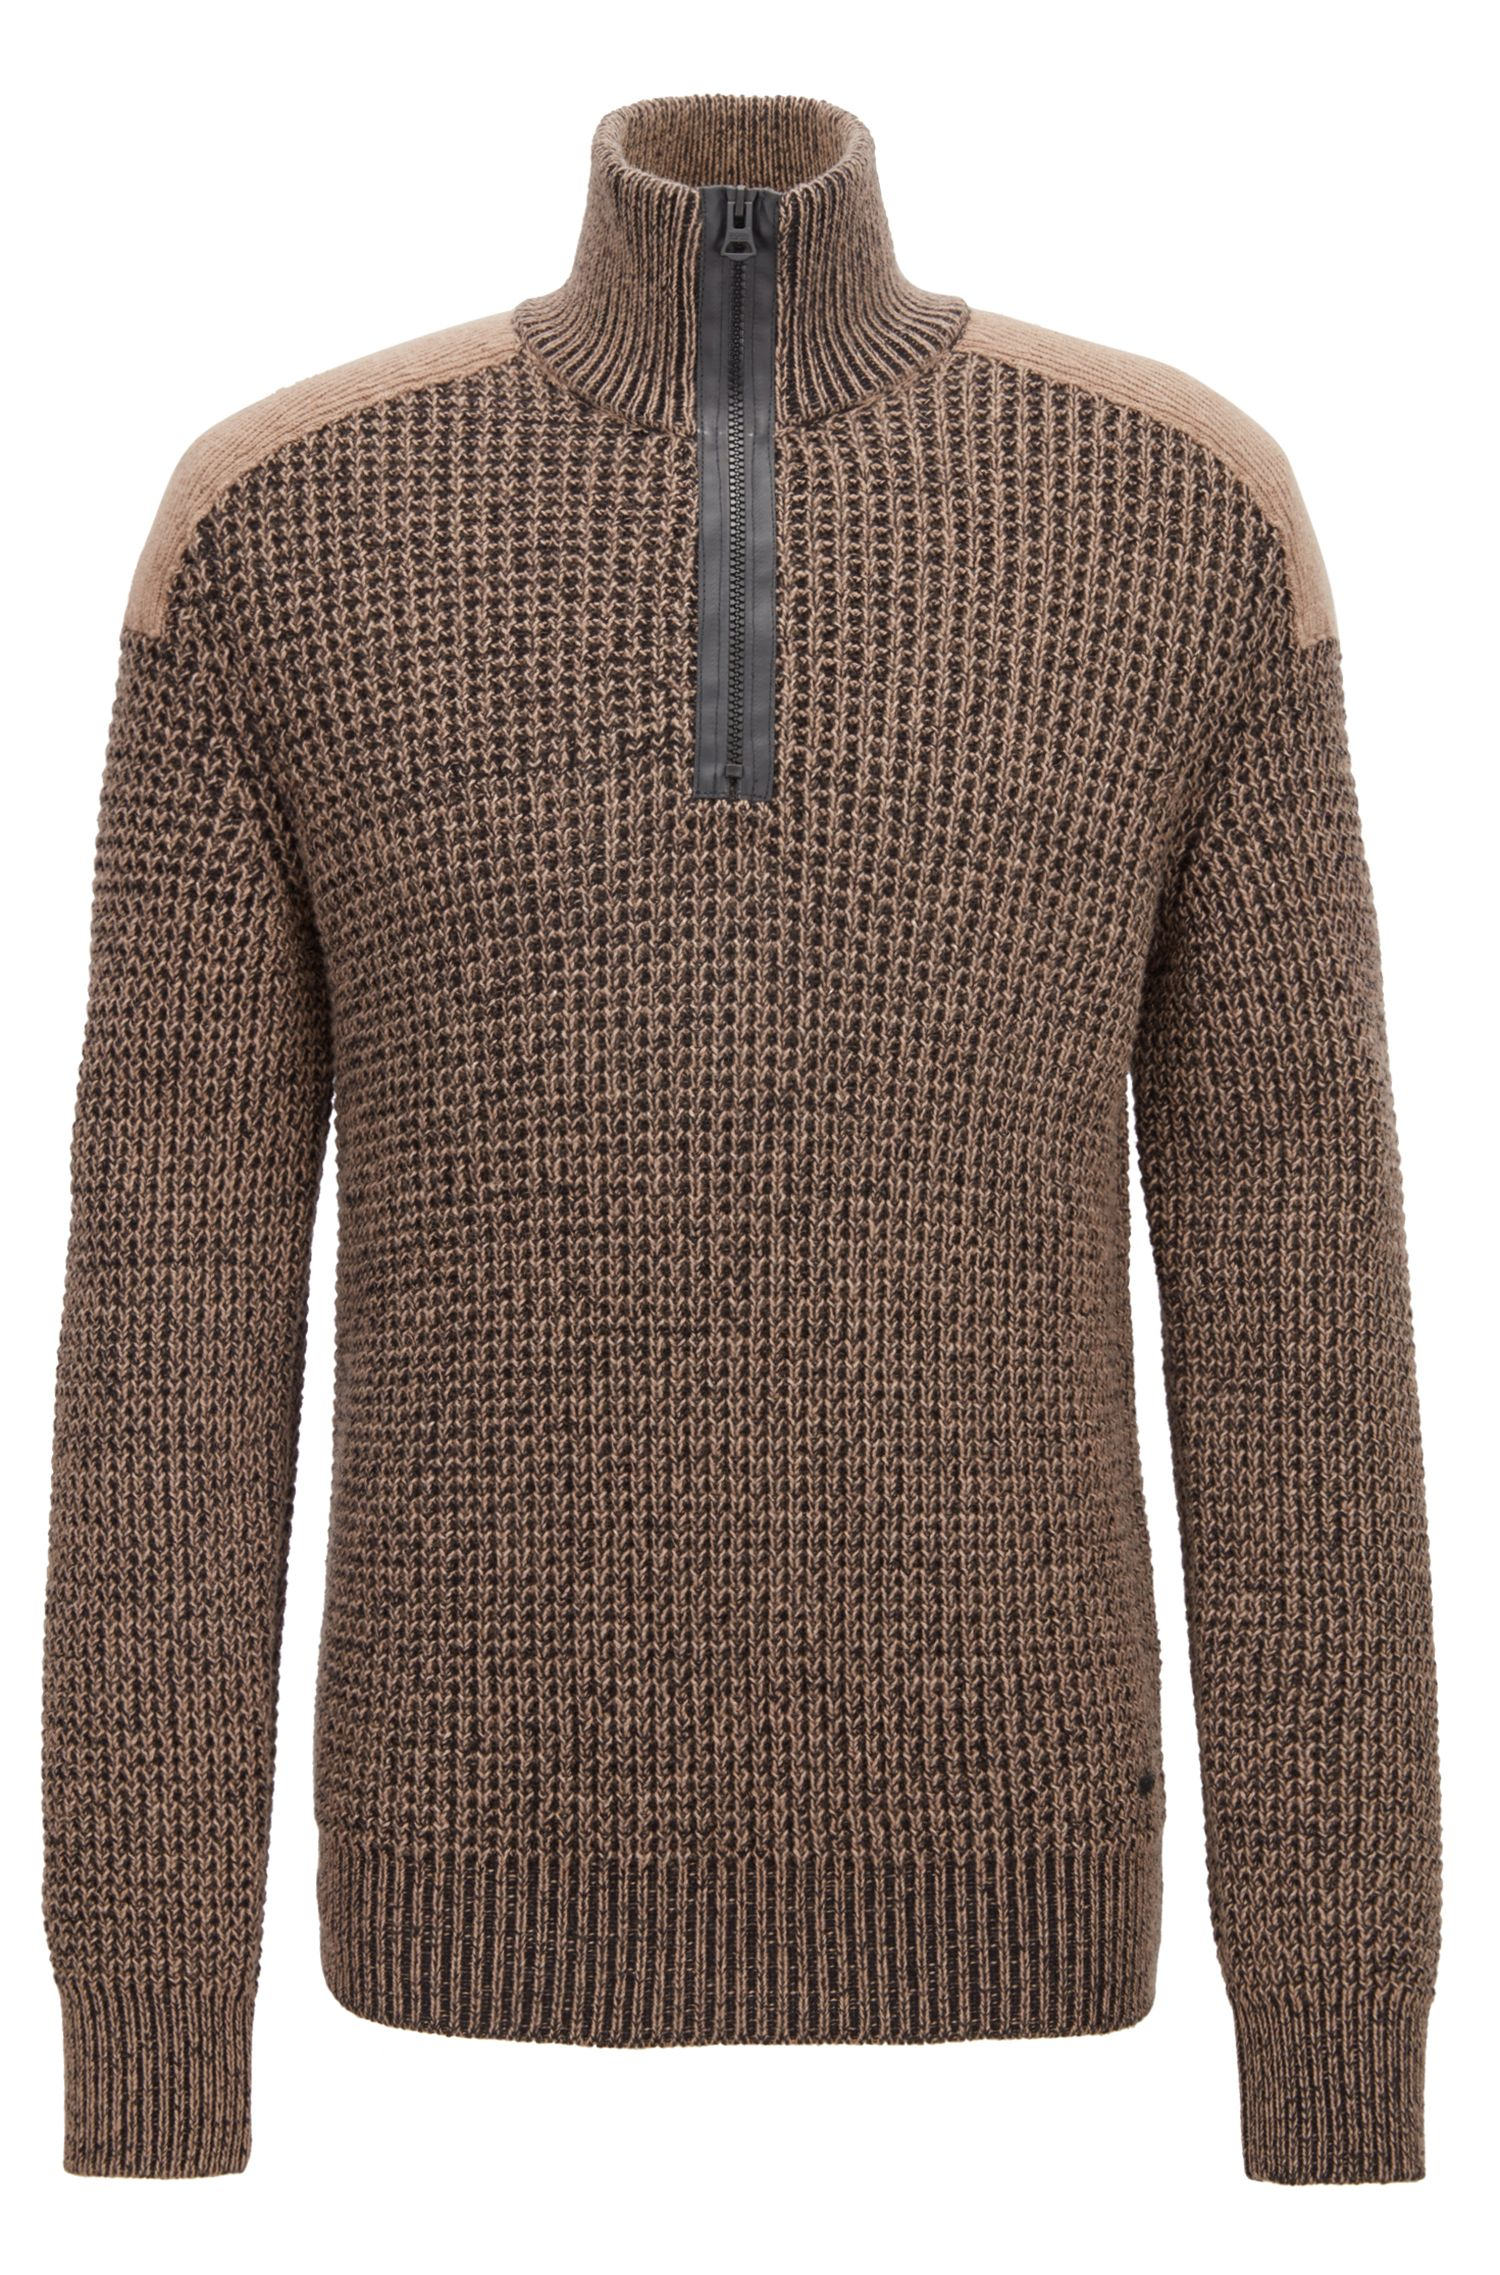 Knitted zipper-neck sweater with contrast shoulder patch, Open Beige